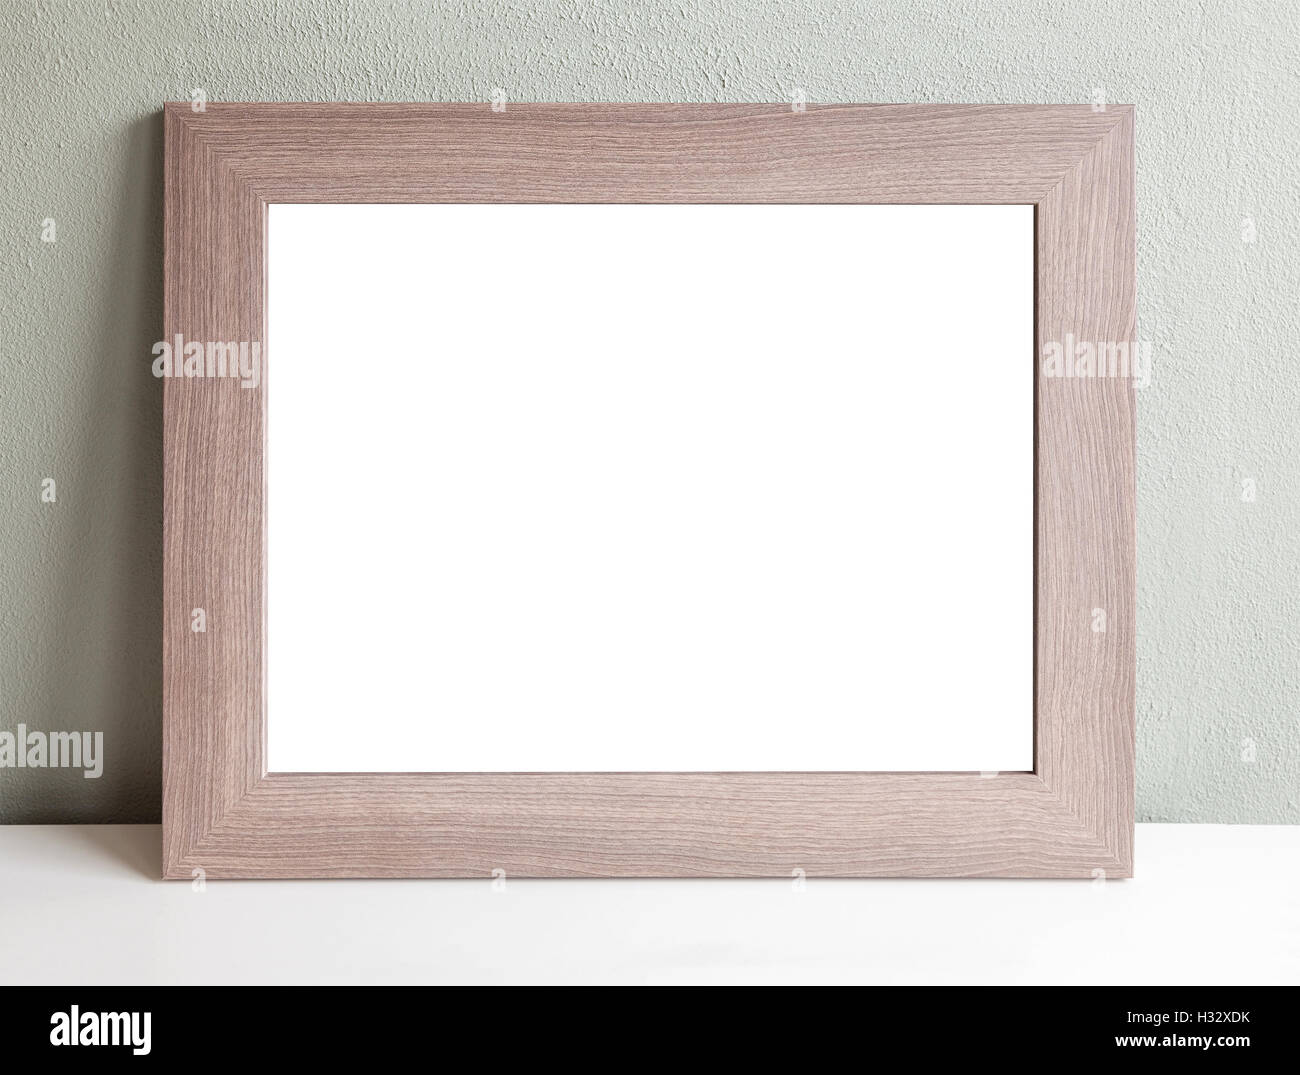 Wooden Picture Frame Large Stock Photos & Wooden Picture Frame Large ...